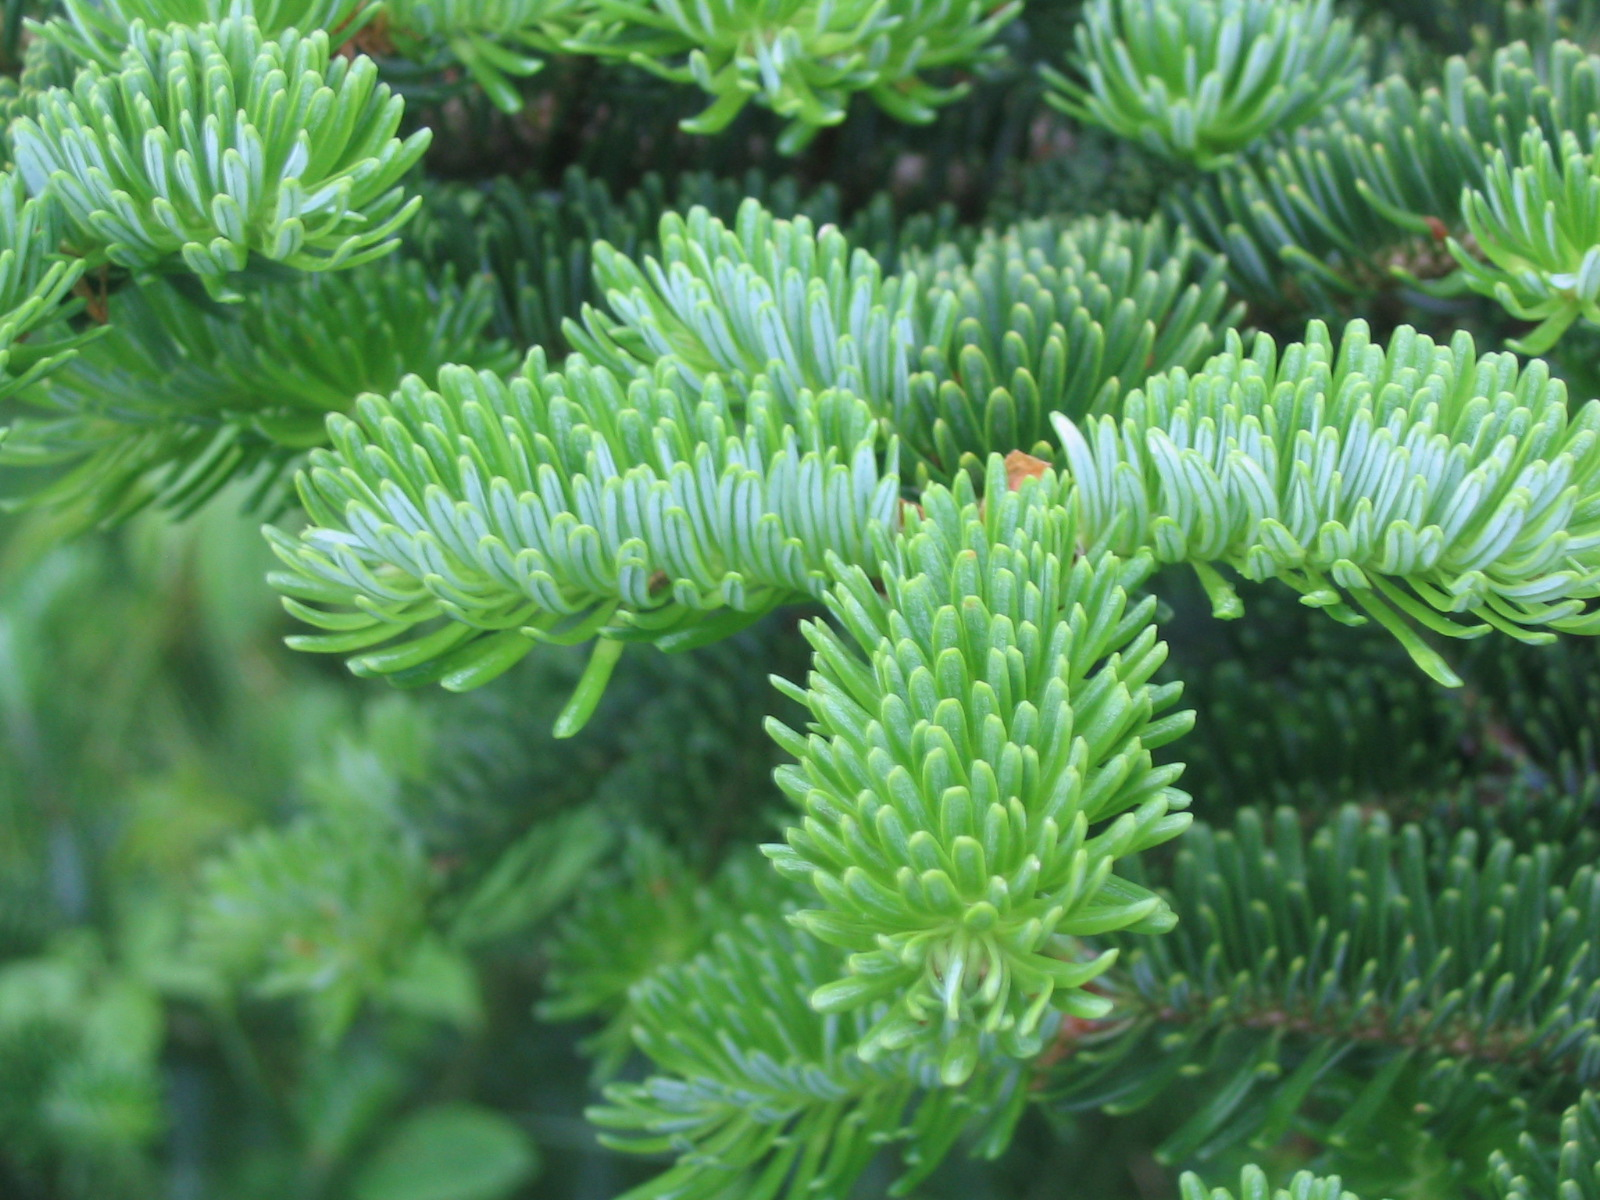 The Scientific Name is Abies fraseri. You will likely hear them called Fraser Fir, Southern Balsam, She Balsam. This picture shows the  Fir has soft flat needles, while spruce has sharp needles (f for flat, s for sharp). of Abies fraseri